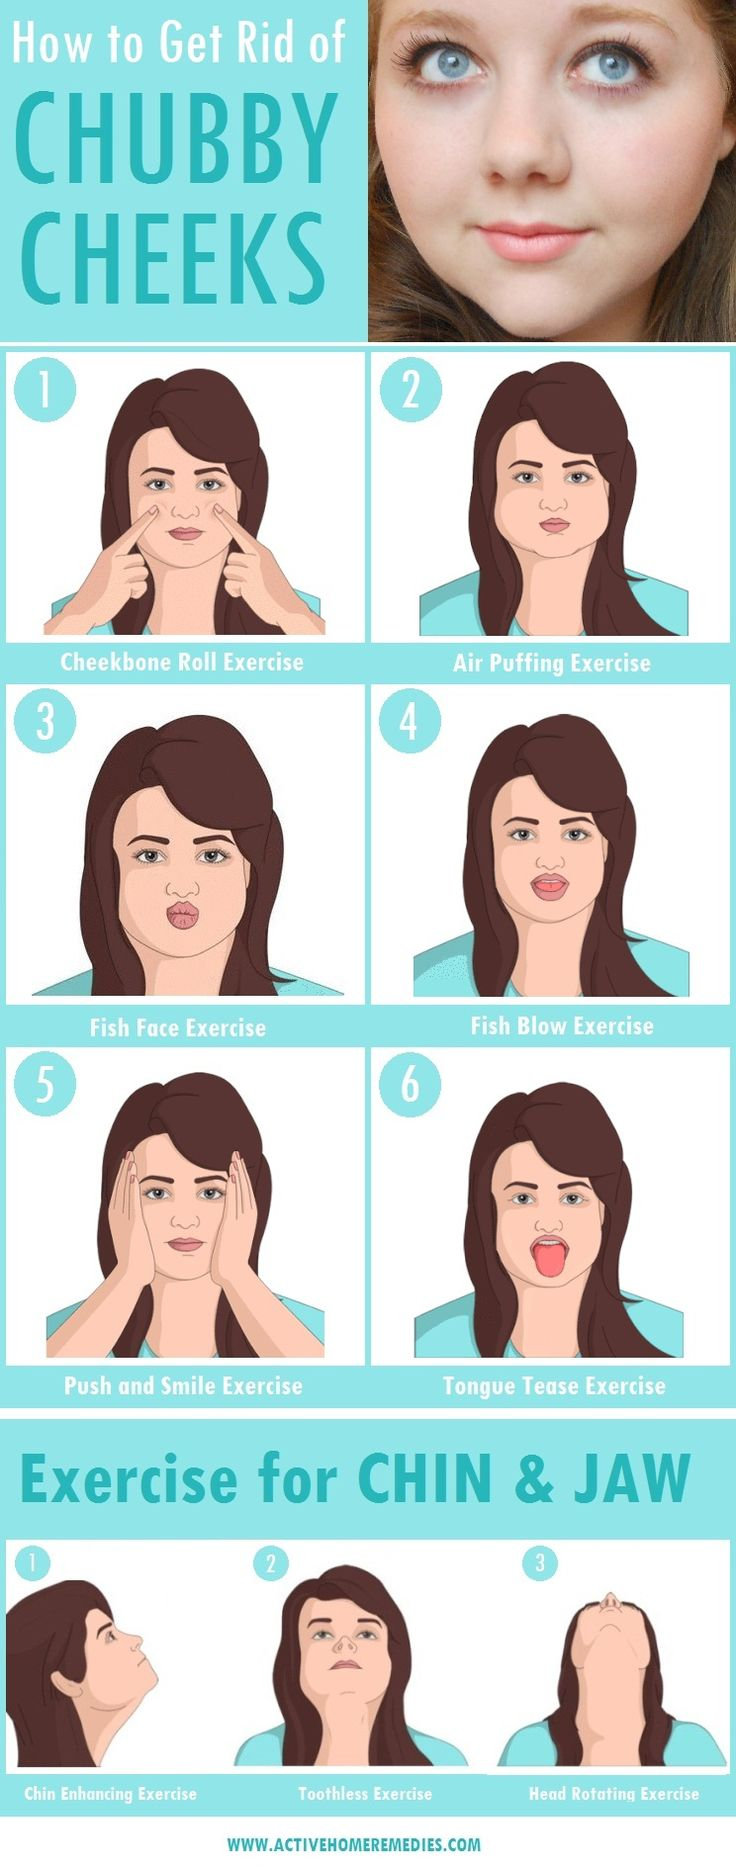 Facial exercises to reduce chubby cheeks